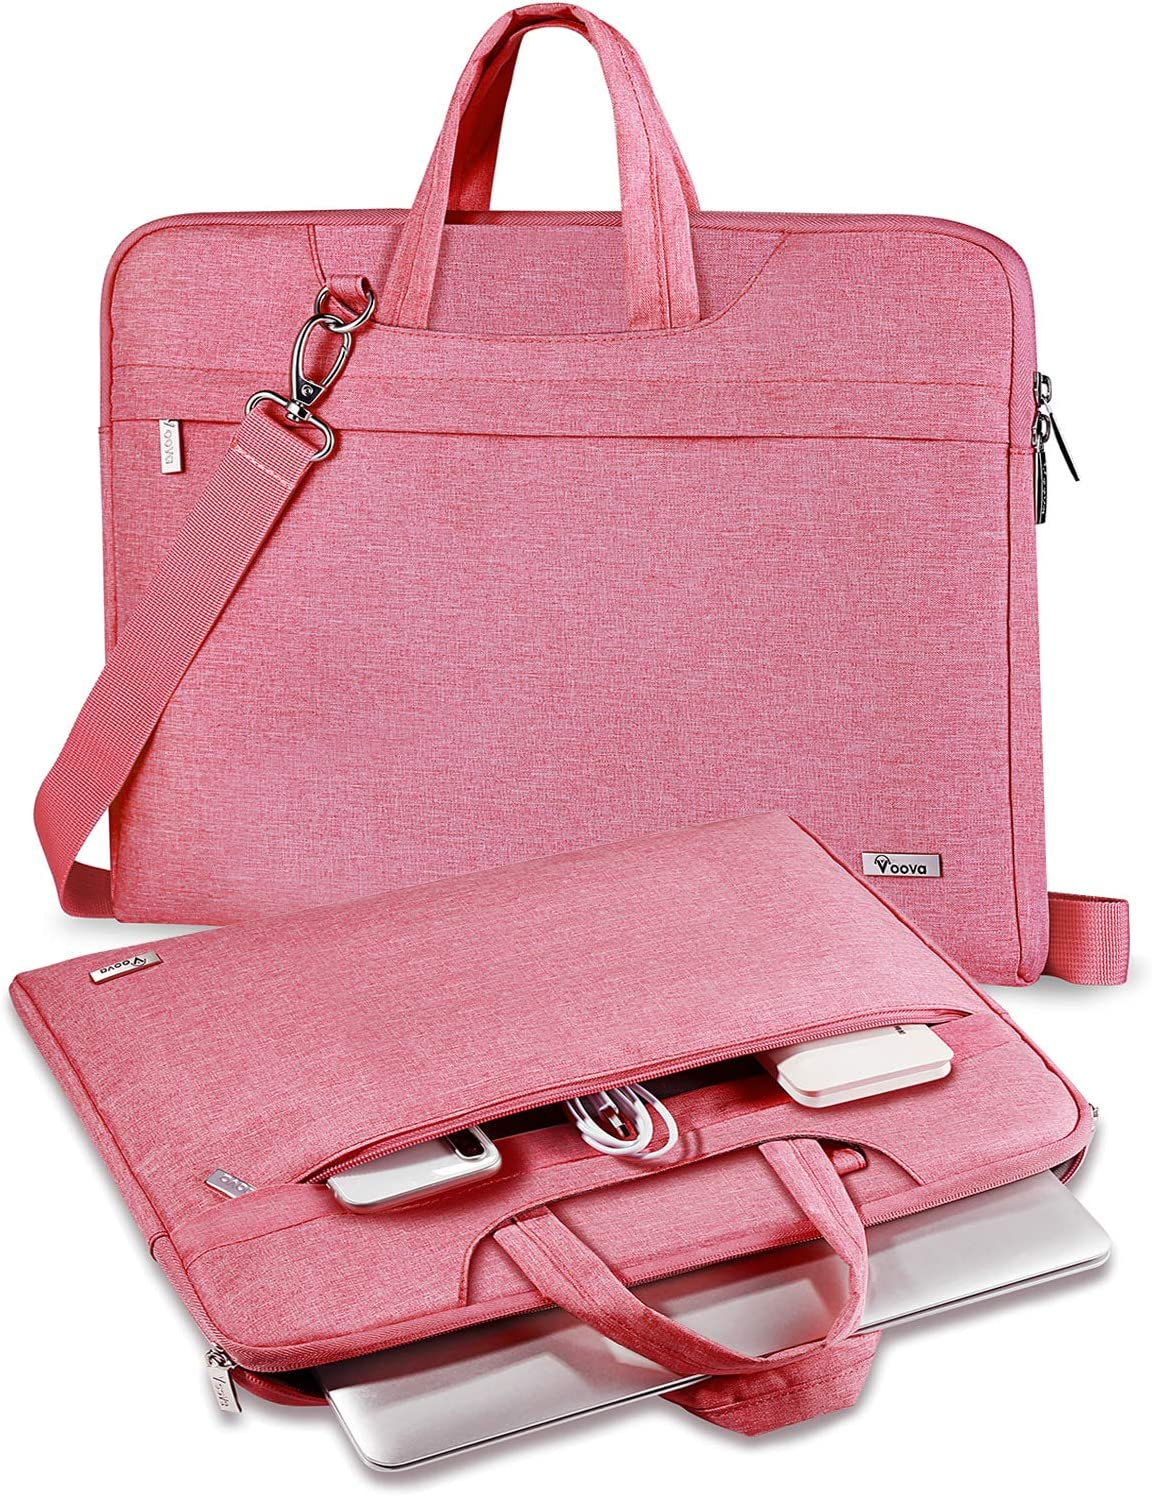 "V Voova Laptop Case 14 15 15.6 inch Laptop Messenger Bag With Shoulder Strap Compatible for 16"" New MacBook Pro,Surface Laptop 3,Acer Aspire 5,HP 15.6,XPS 15 Chromebook Sleeve for Women Lady,Pink"